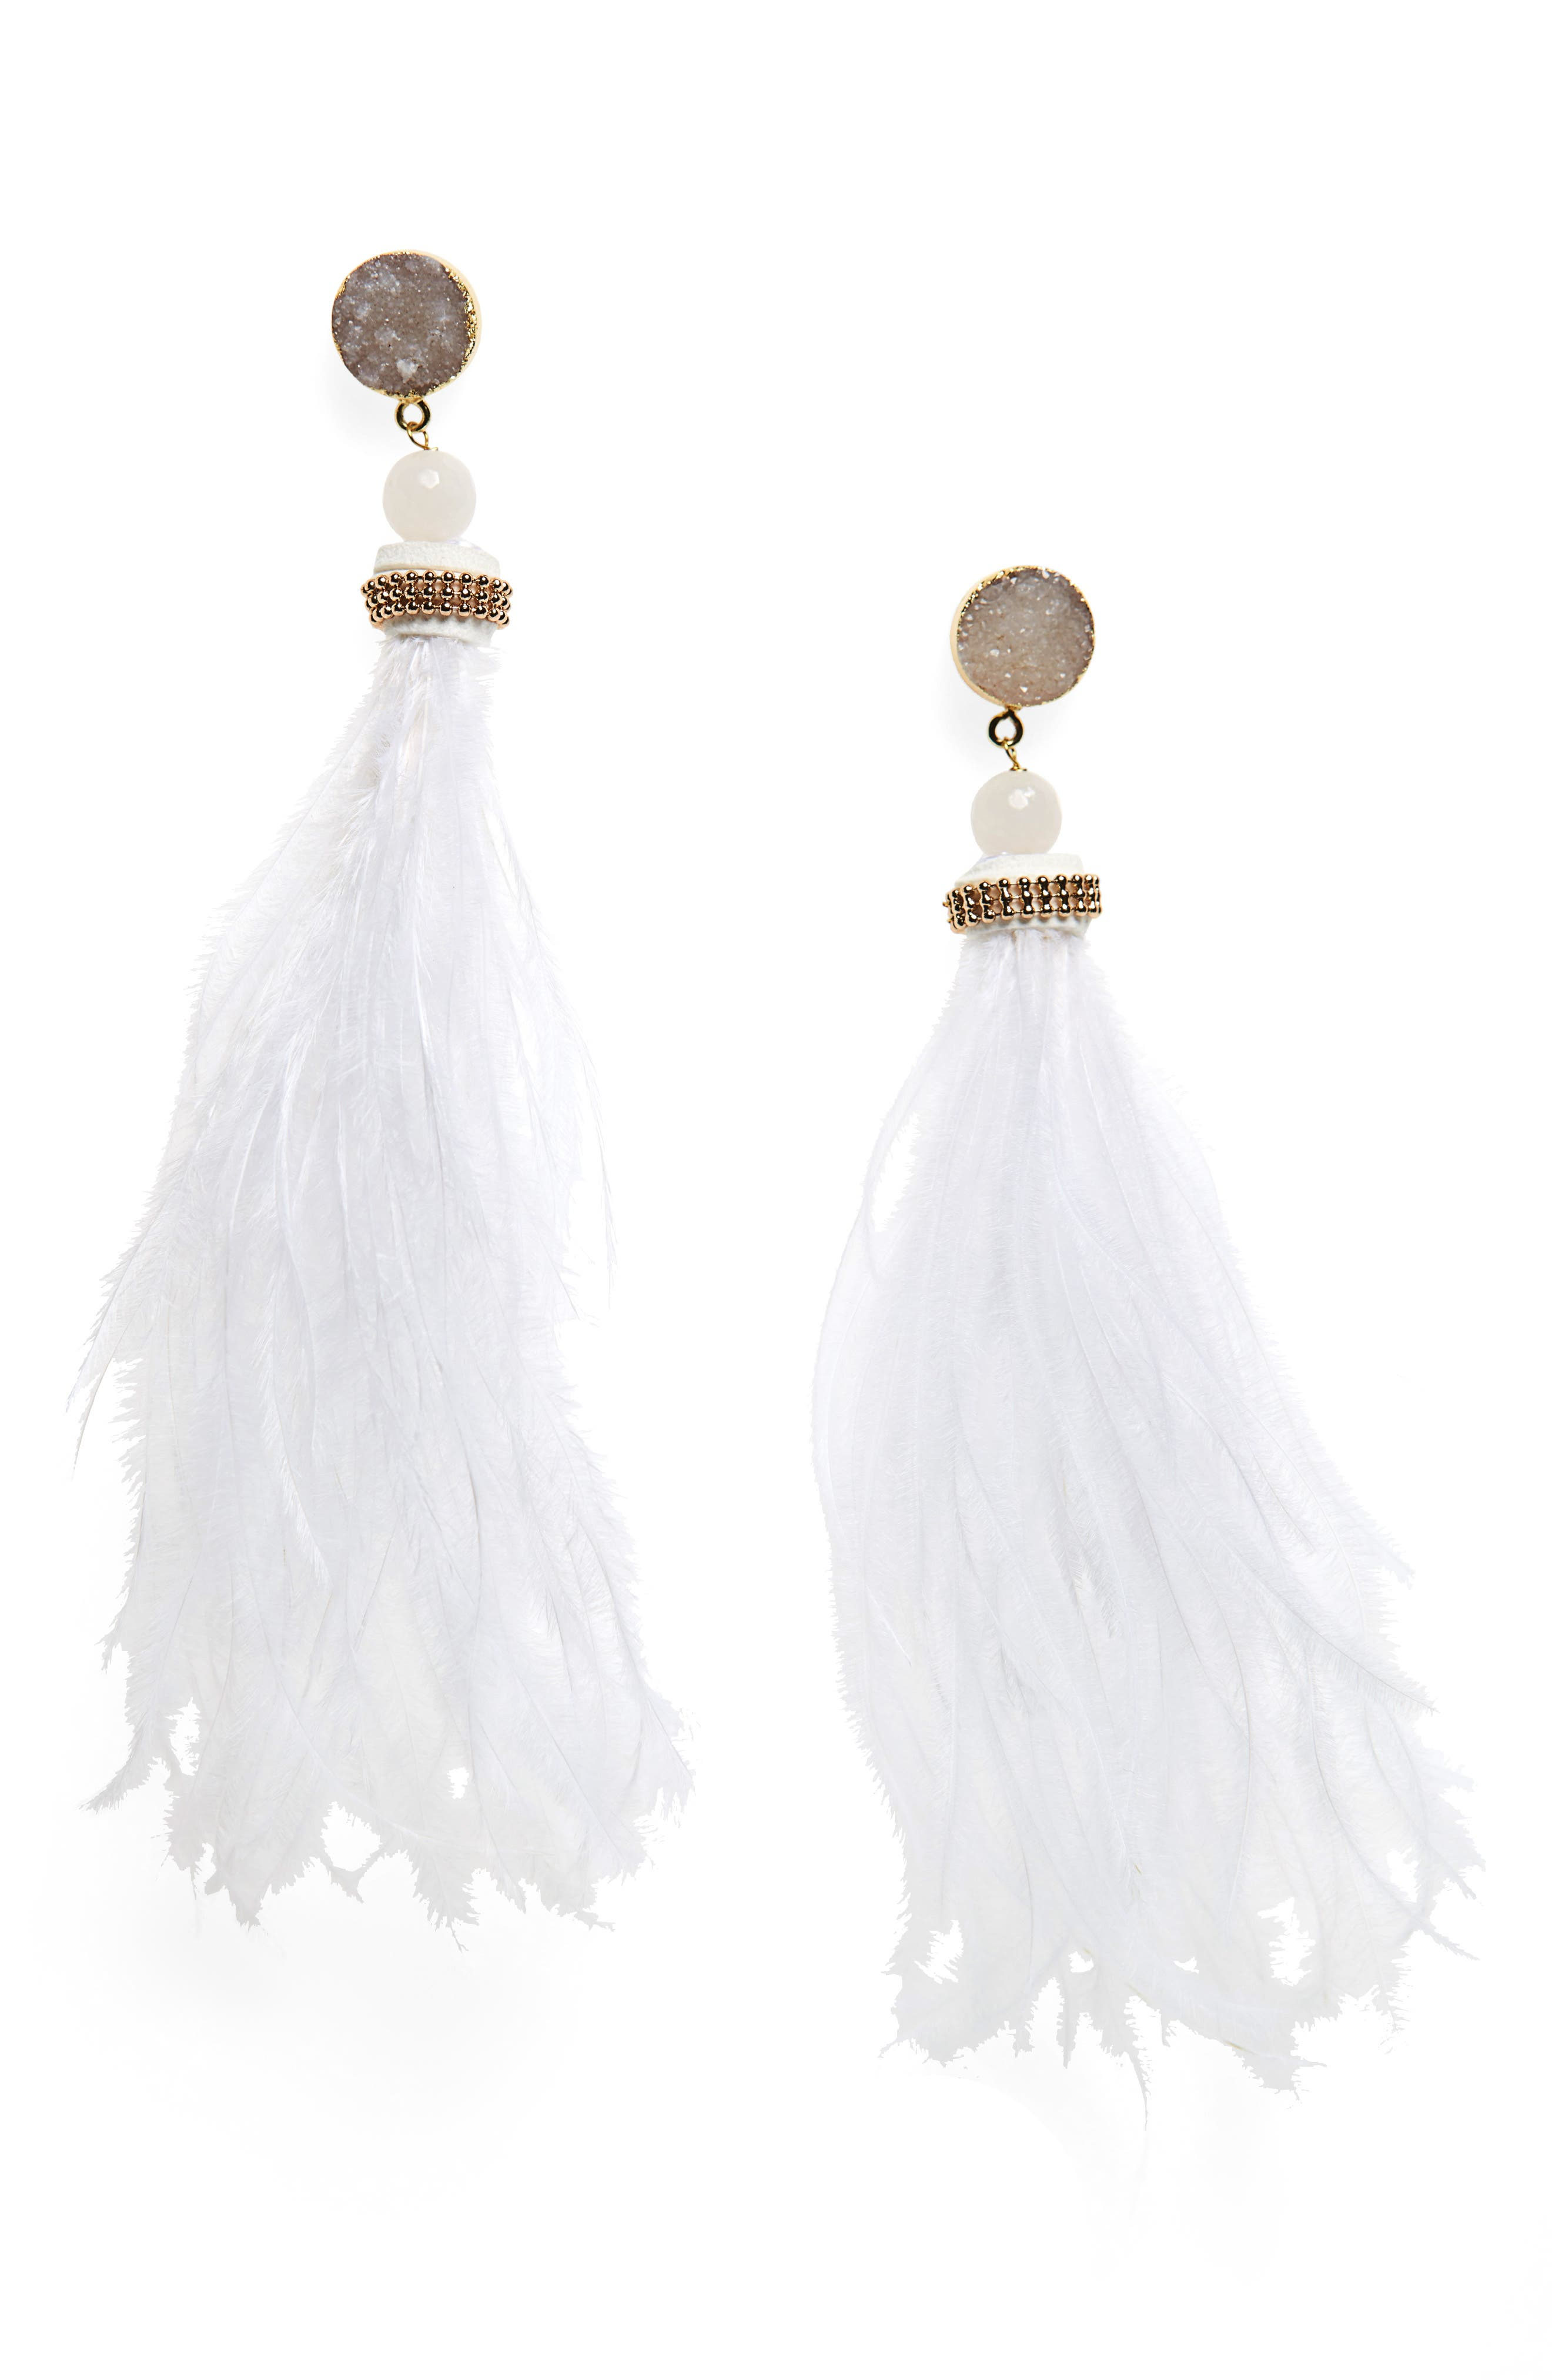 Stone & Feather Statement Earrings,                         Main,                         color, White